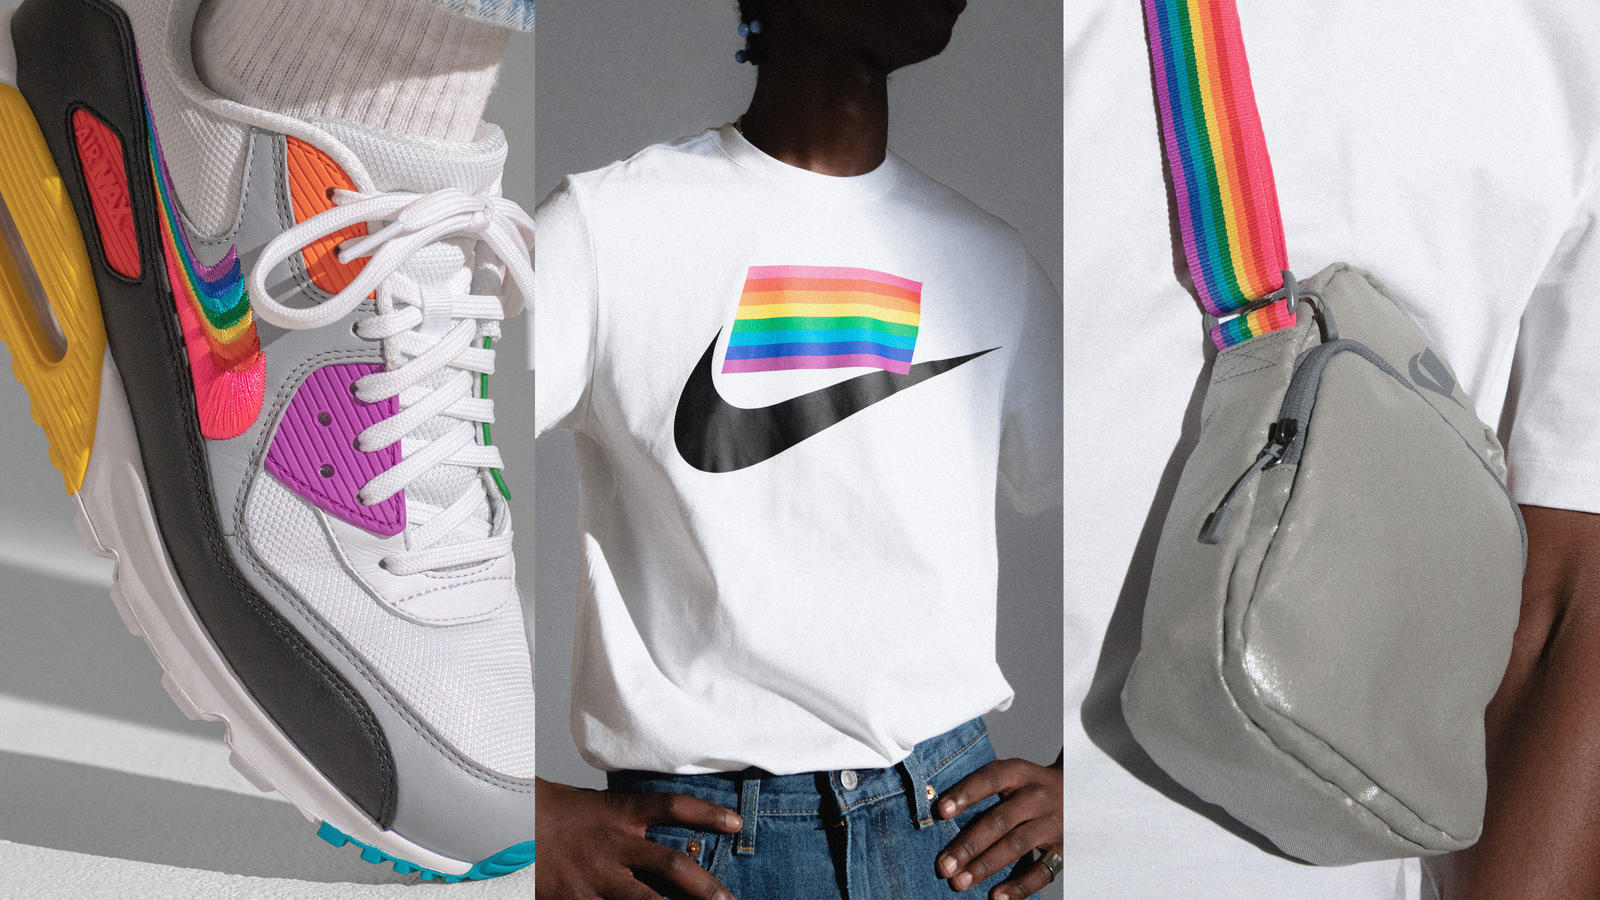 6c72abe992 Nike 2019 BETRUE Collection - Nike News